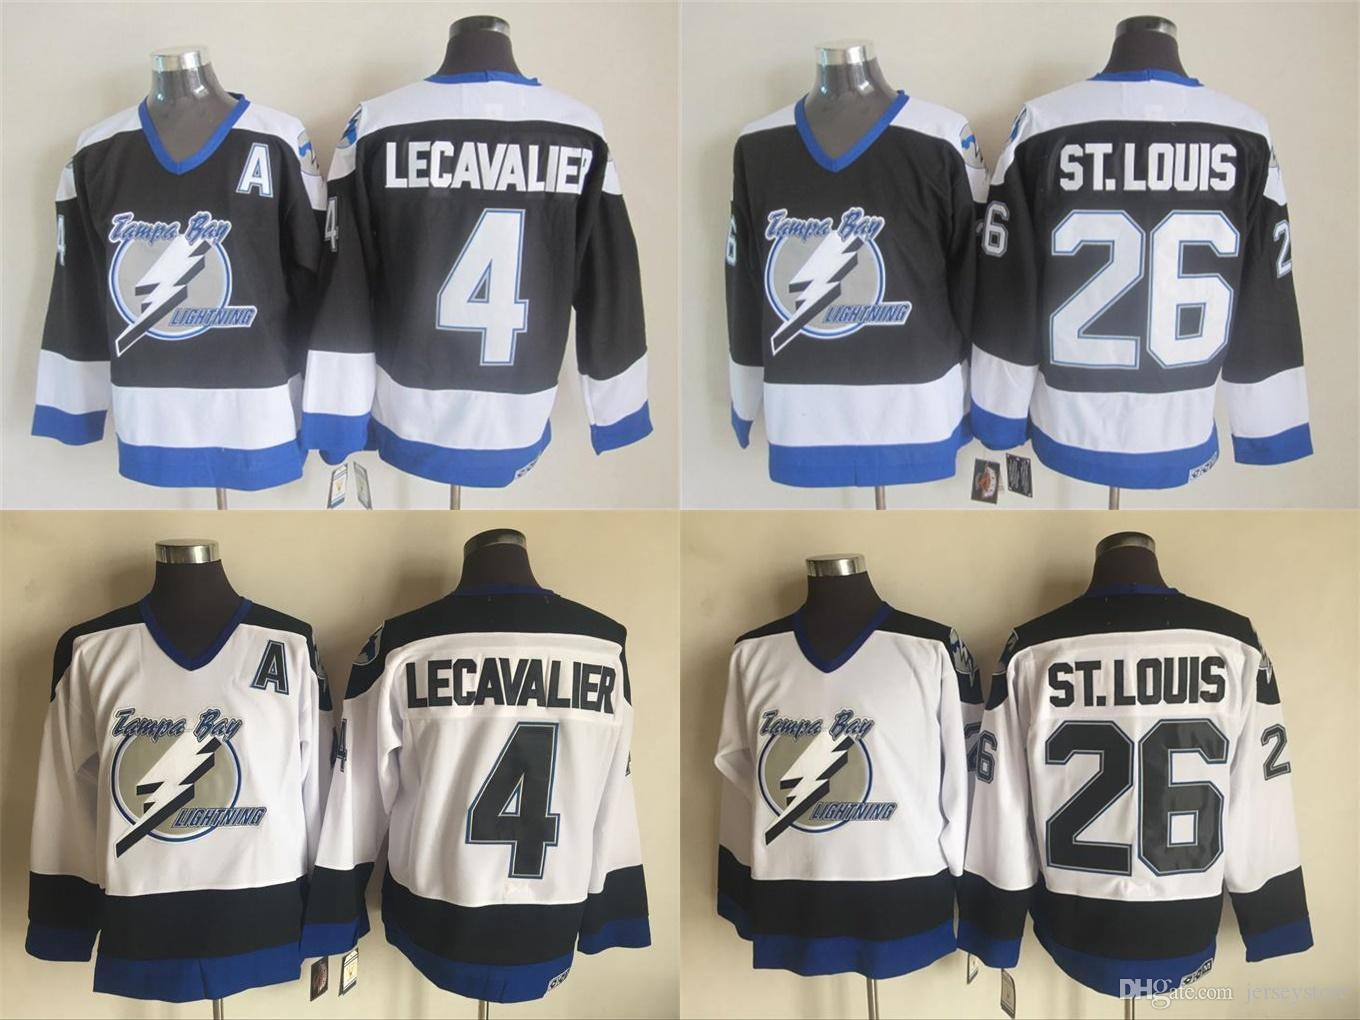 d64226cfc ... 2017 Tampa Bay Lightning Nhl 4 Vincent Lecavalier 26 St.Louis White  Blue Throwback Hockey ...